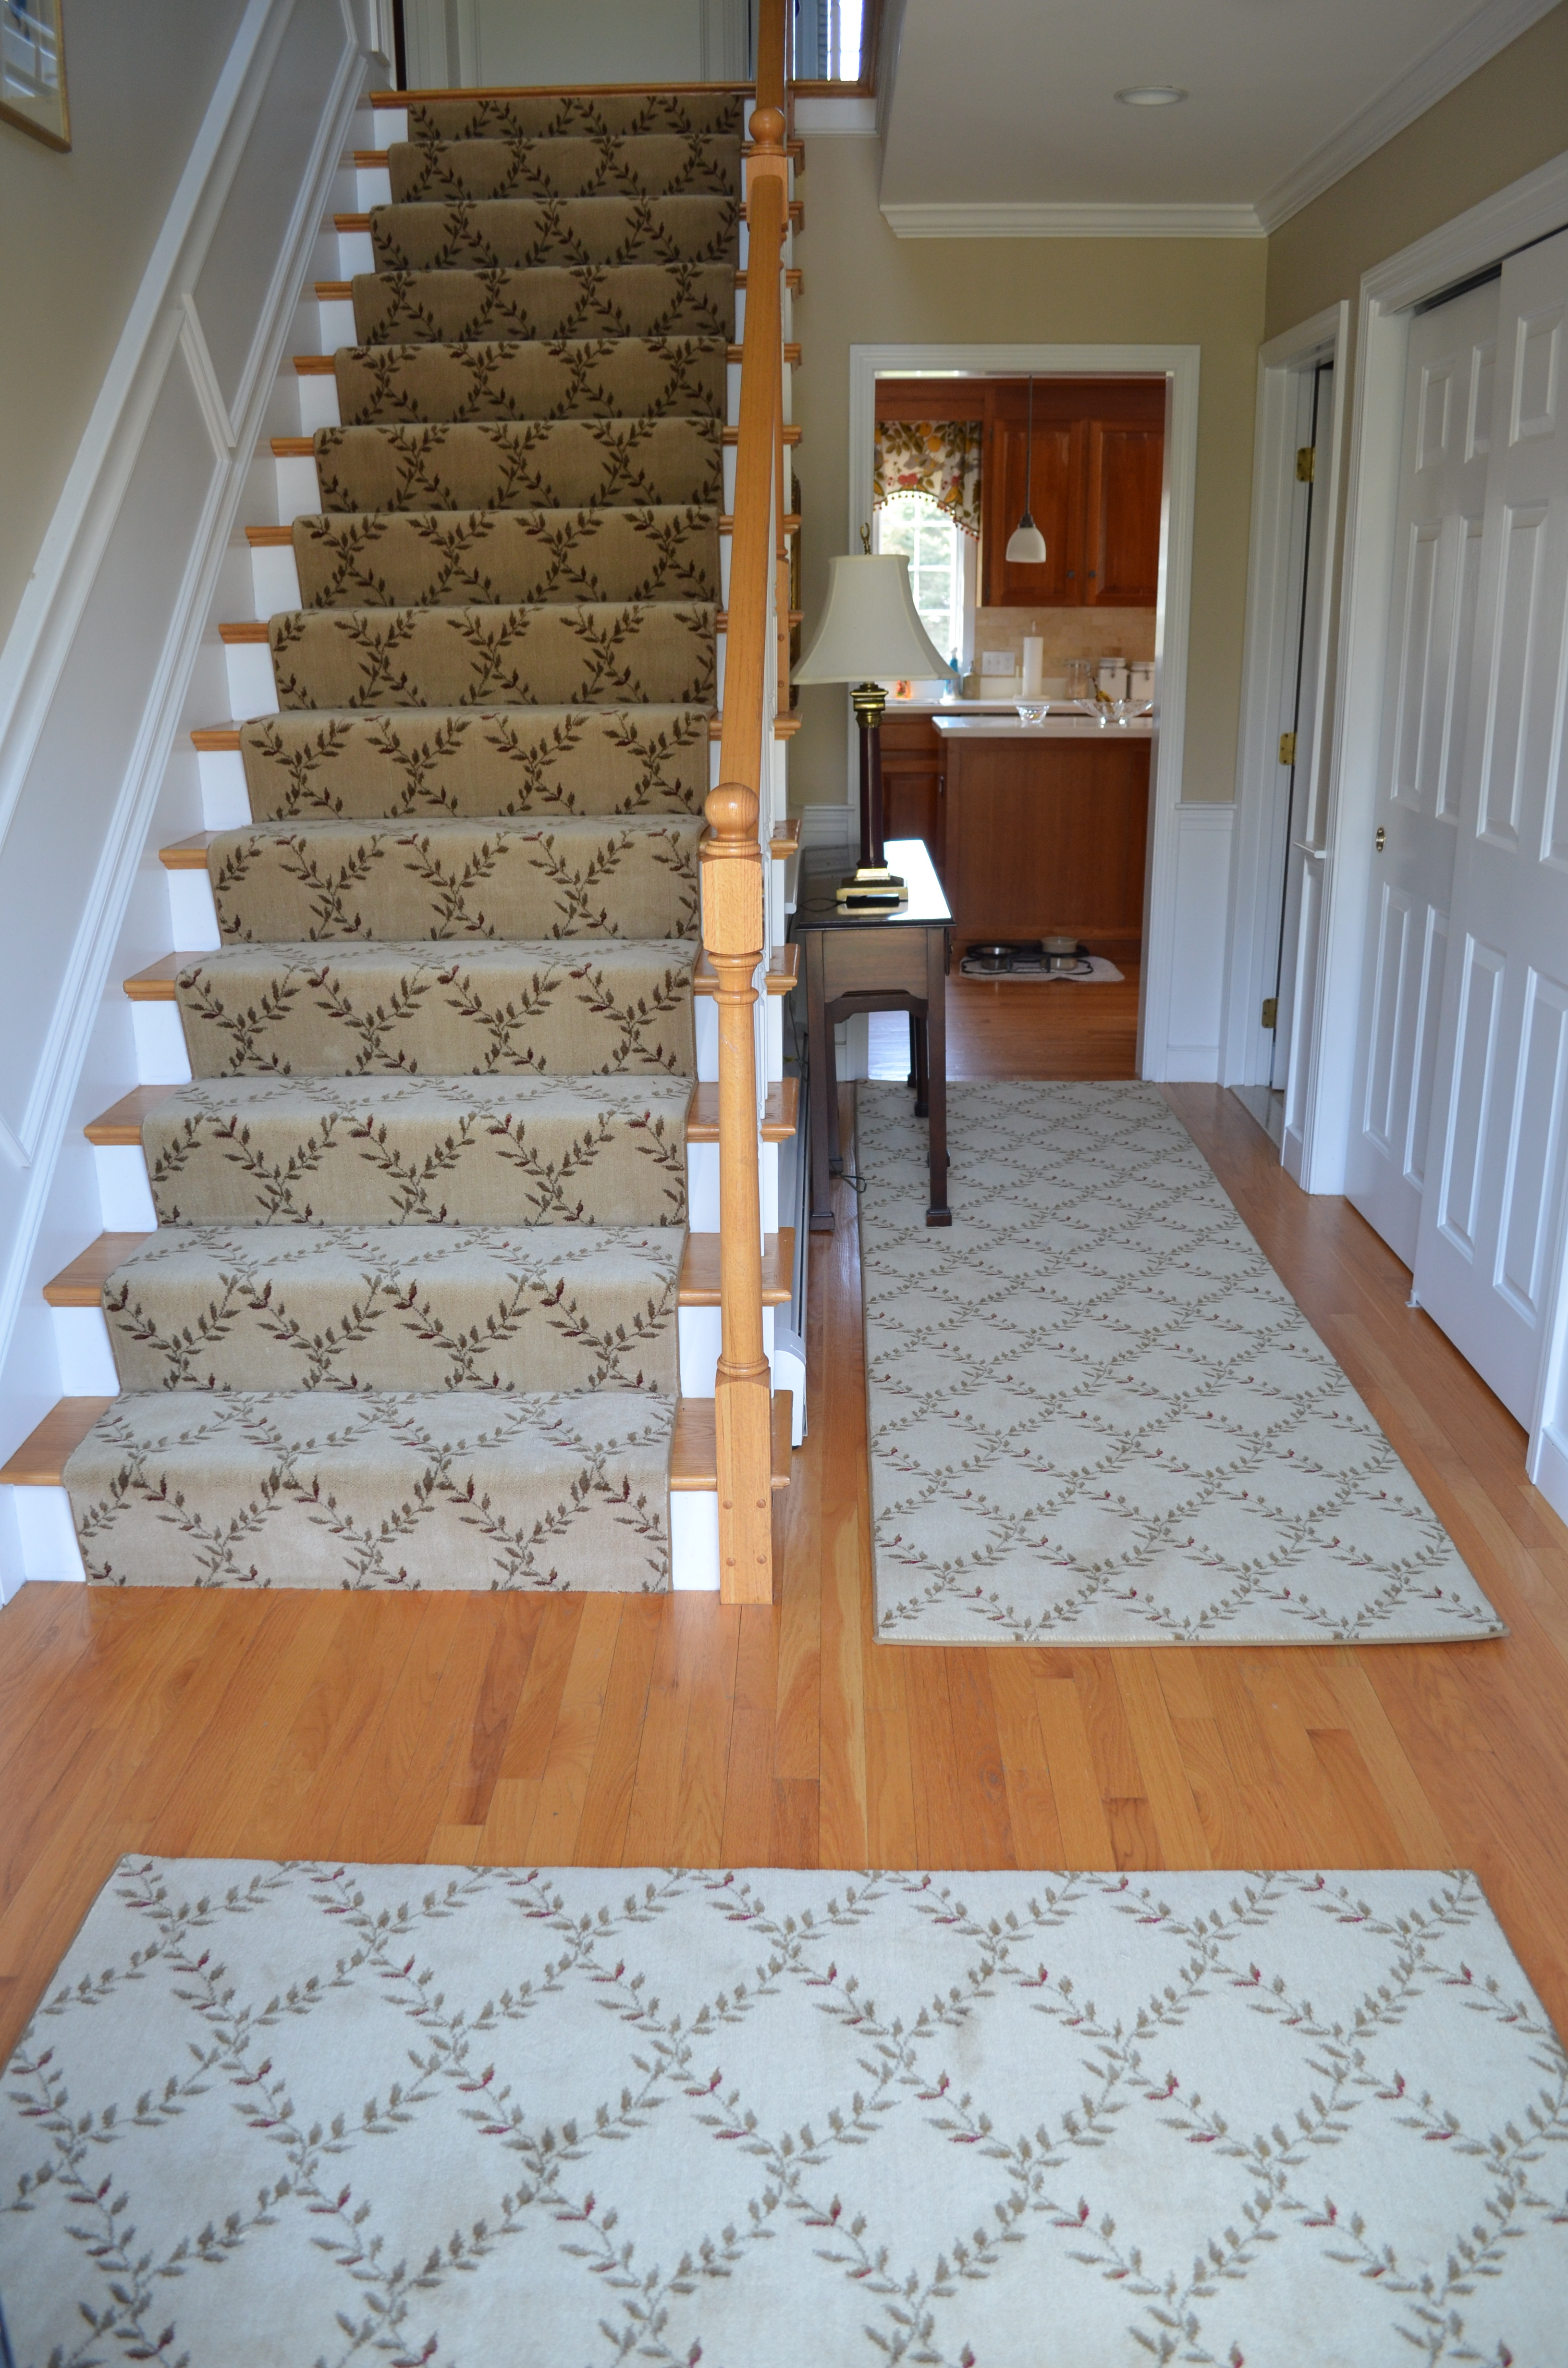 Carpet Runner For Stairs Pertaining To Modern Rug Runners For Hallways (#3 of 20)